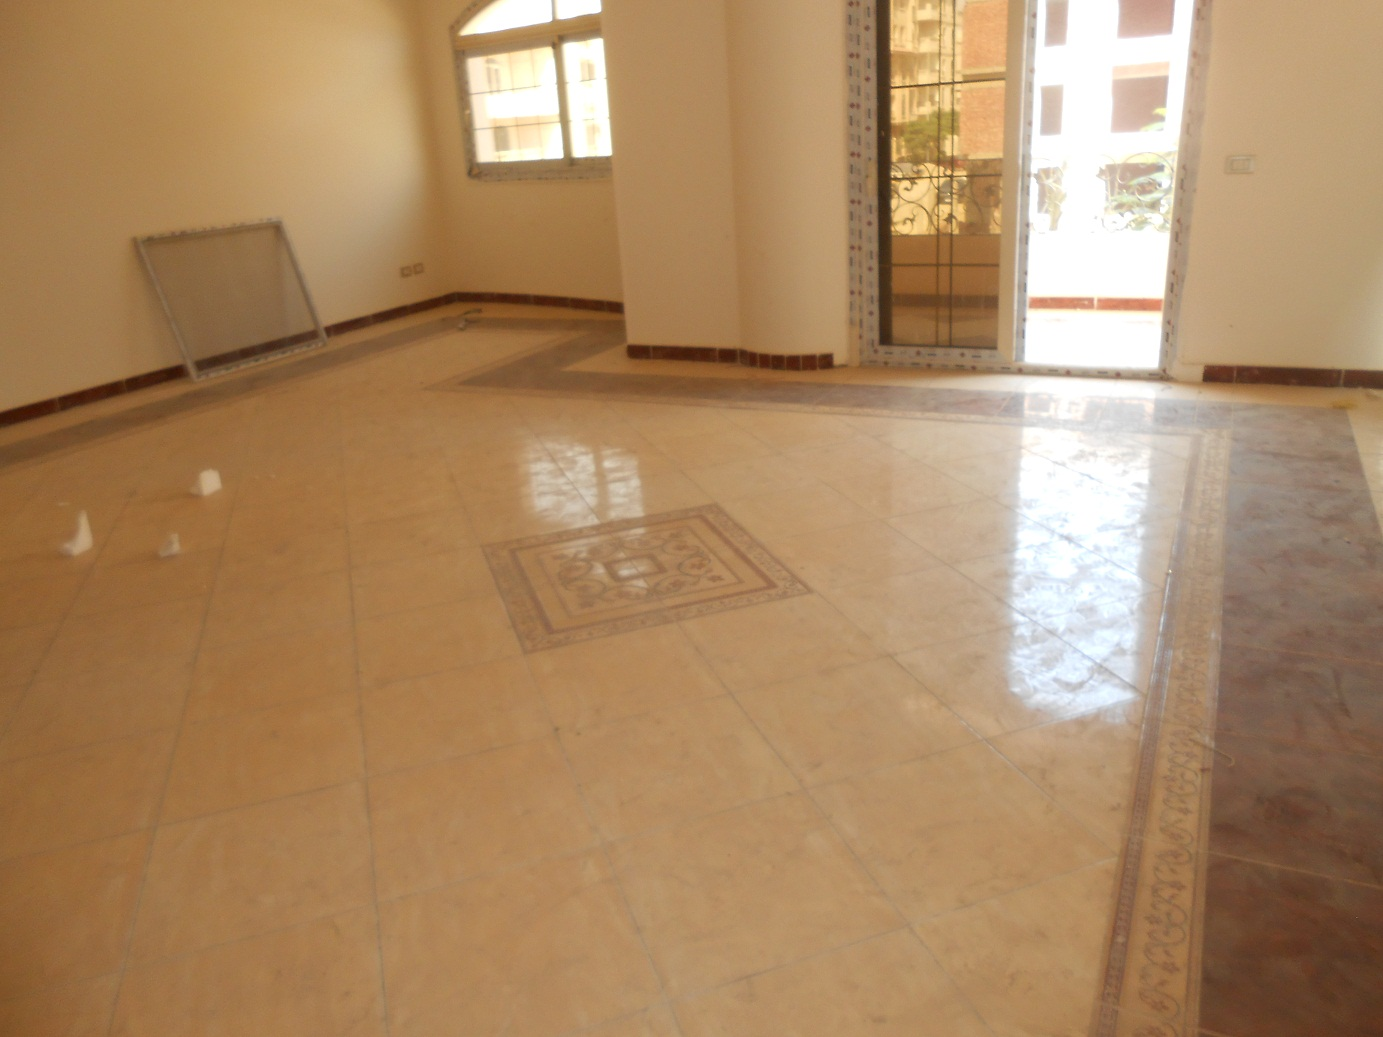 For rent in new Cairo benfsej buildings second floor apartment